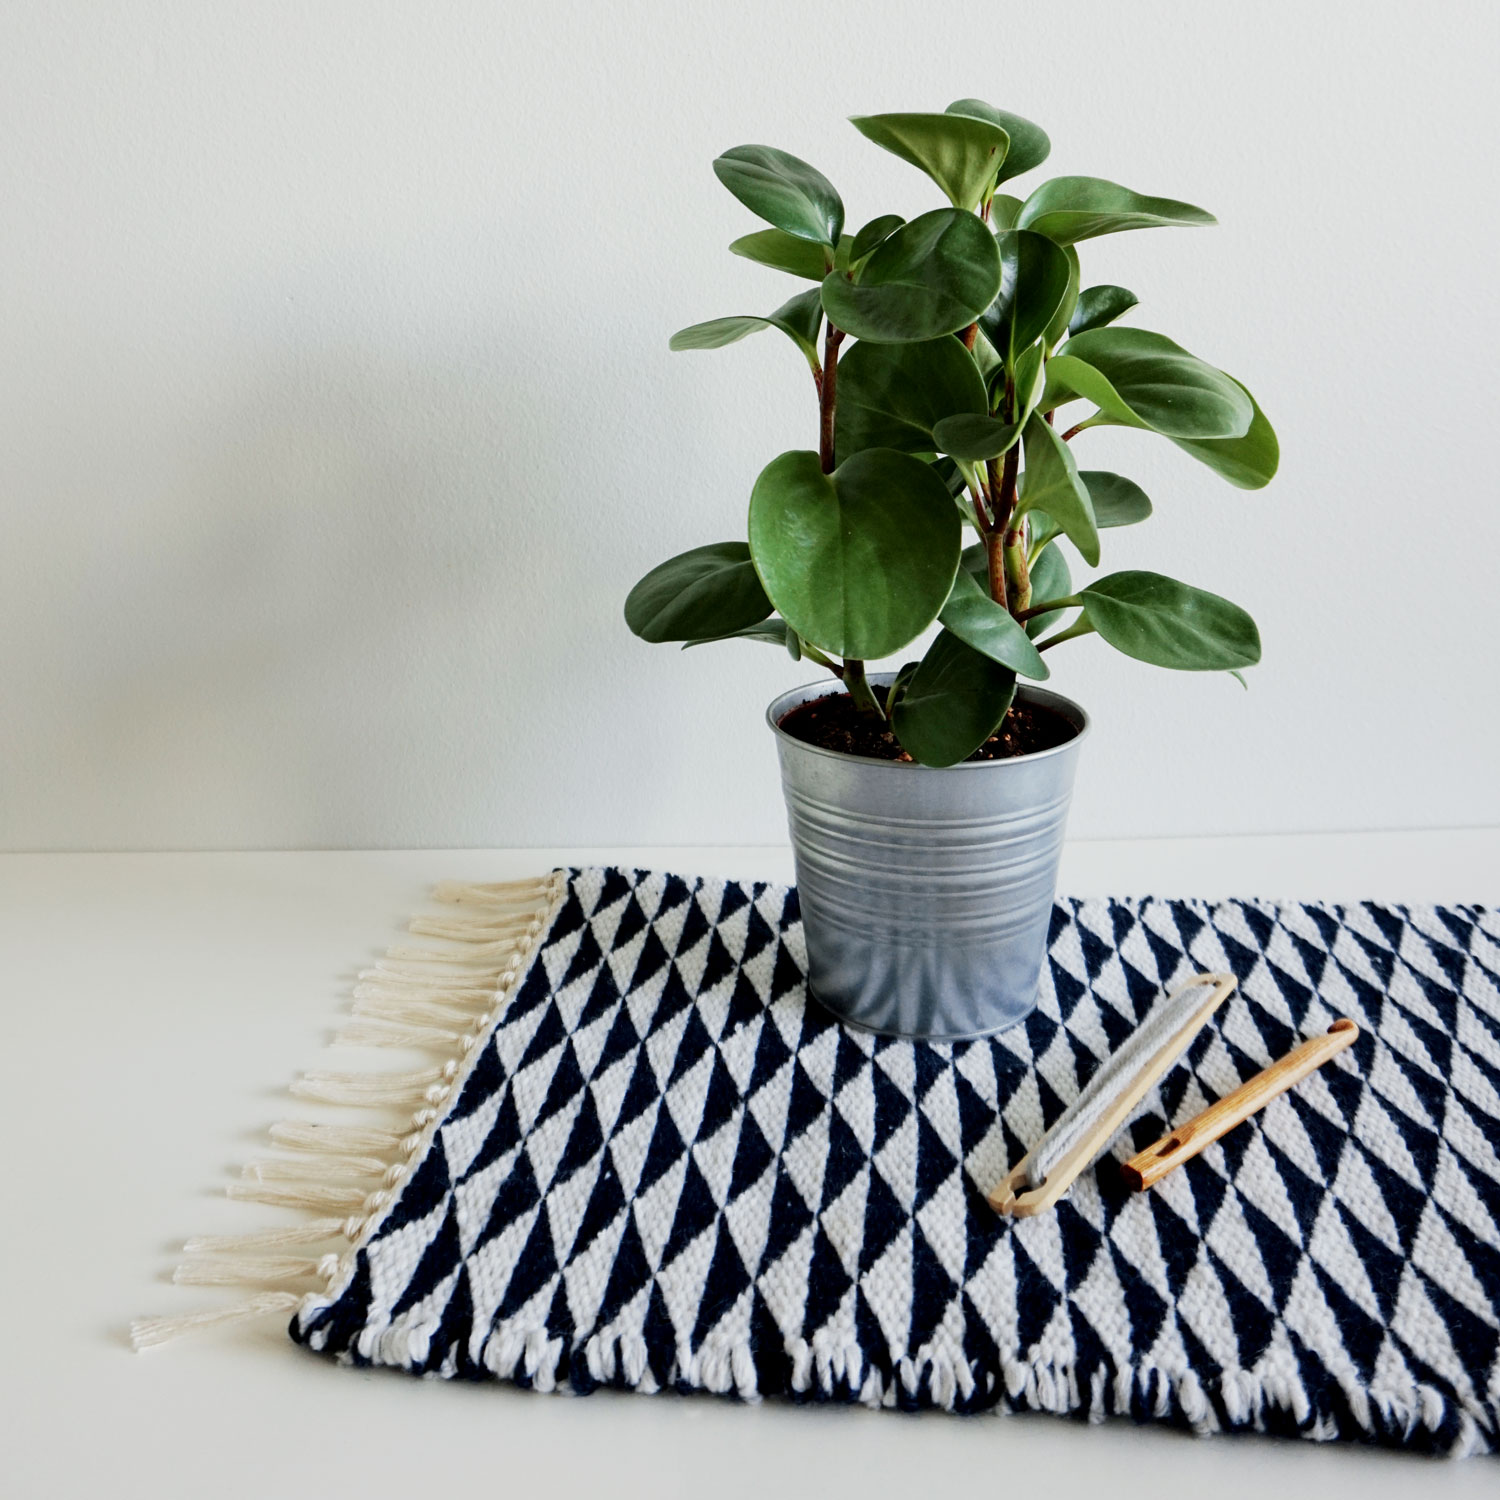 A soft and minimalistic geometric mini rug. Made with navy and white recycled yarn, both harvested from old sweaters.